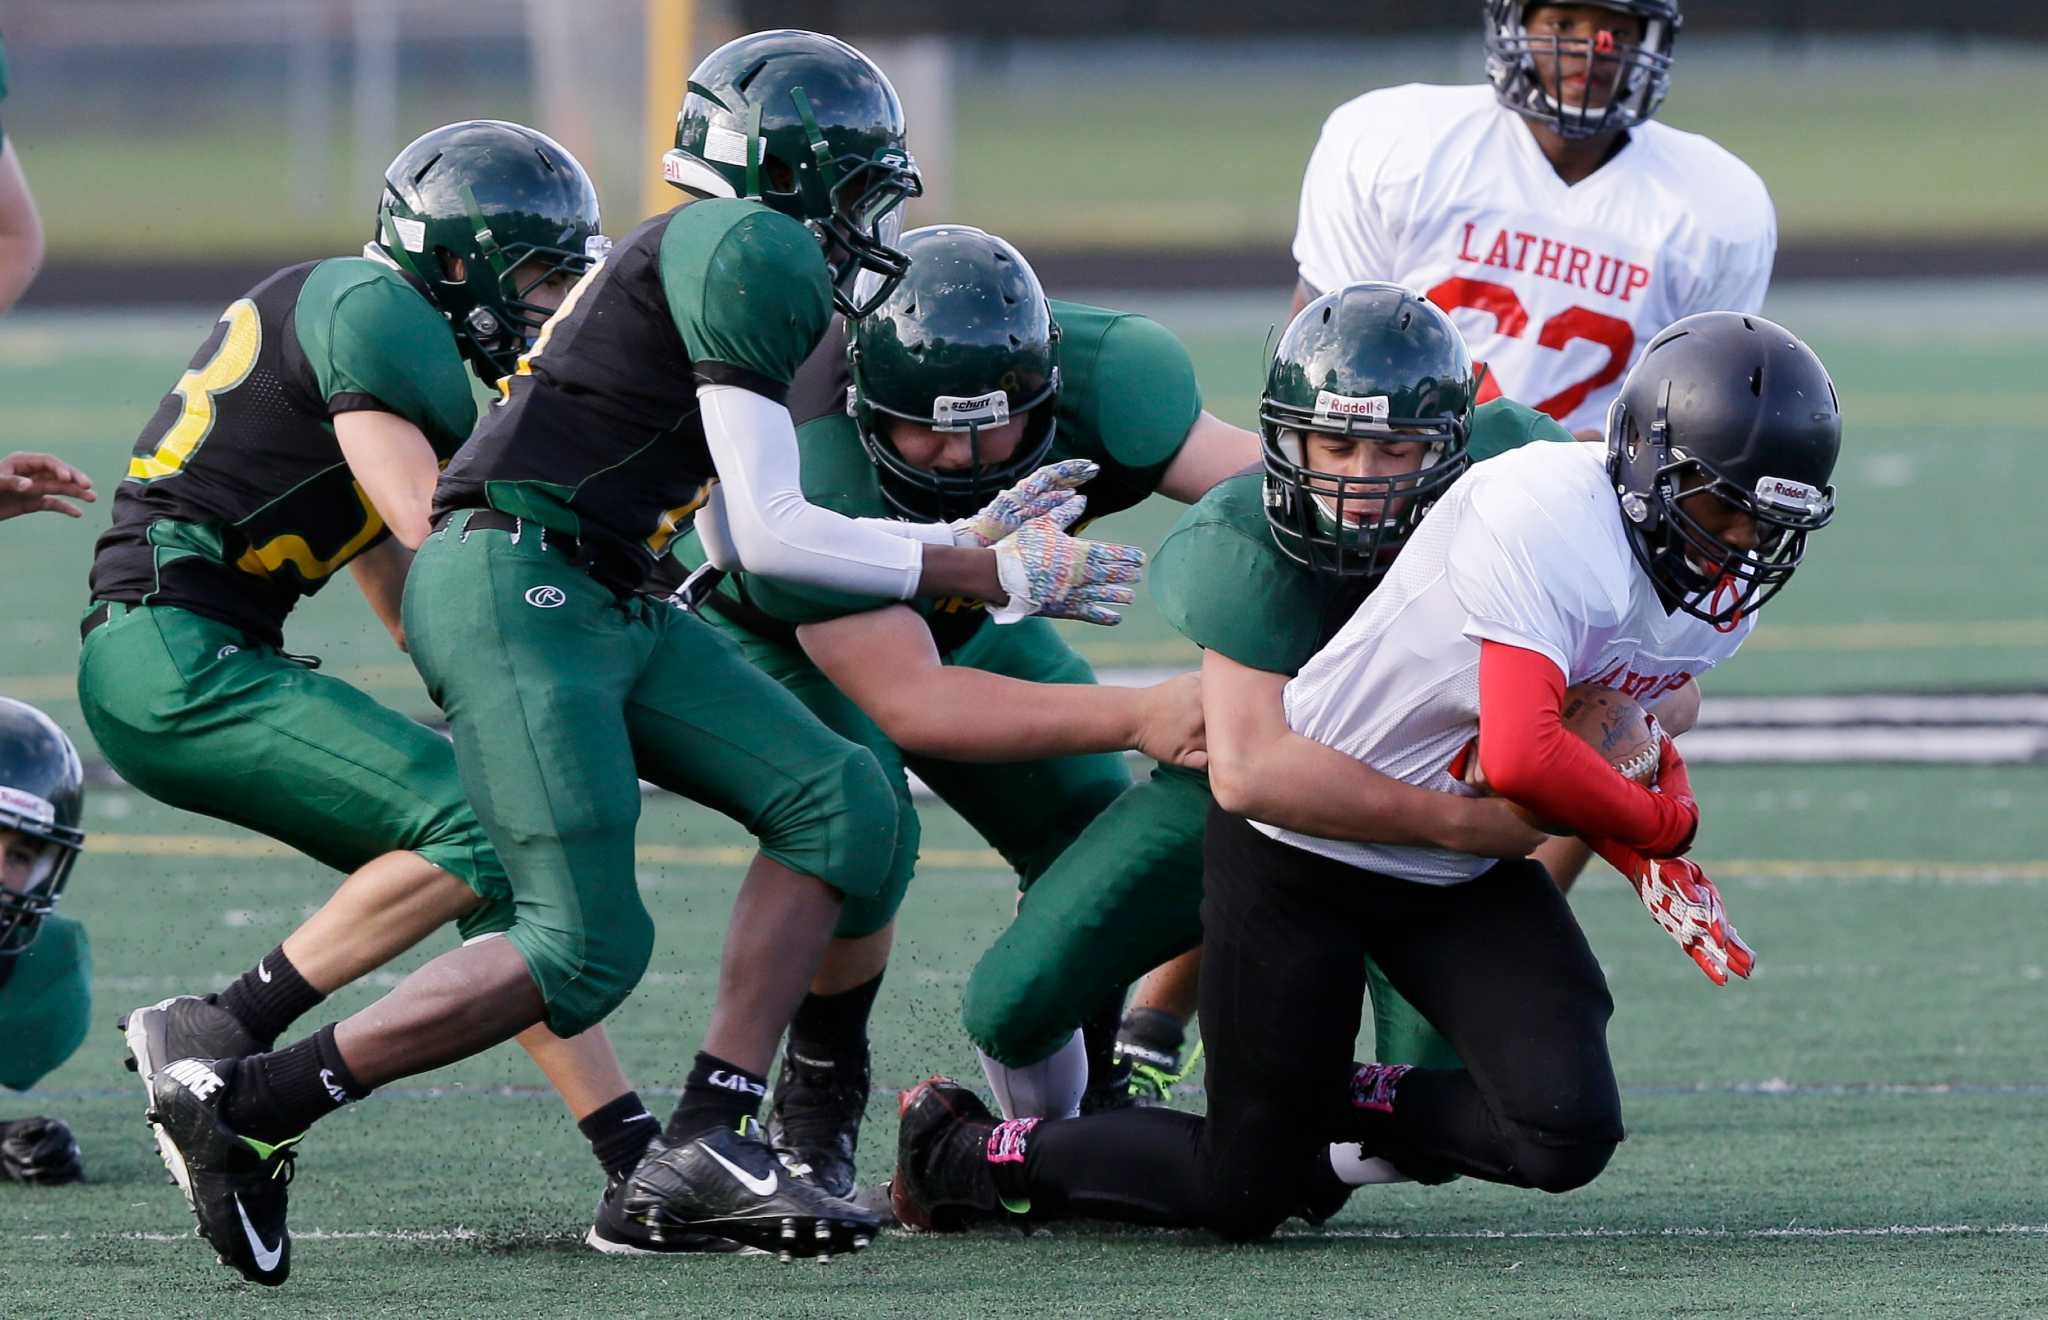 Should young kids play tackle football? NY lawmakers reopen debate